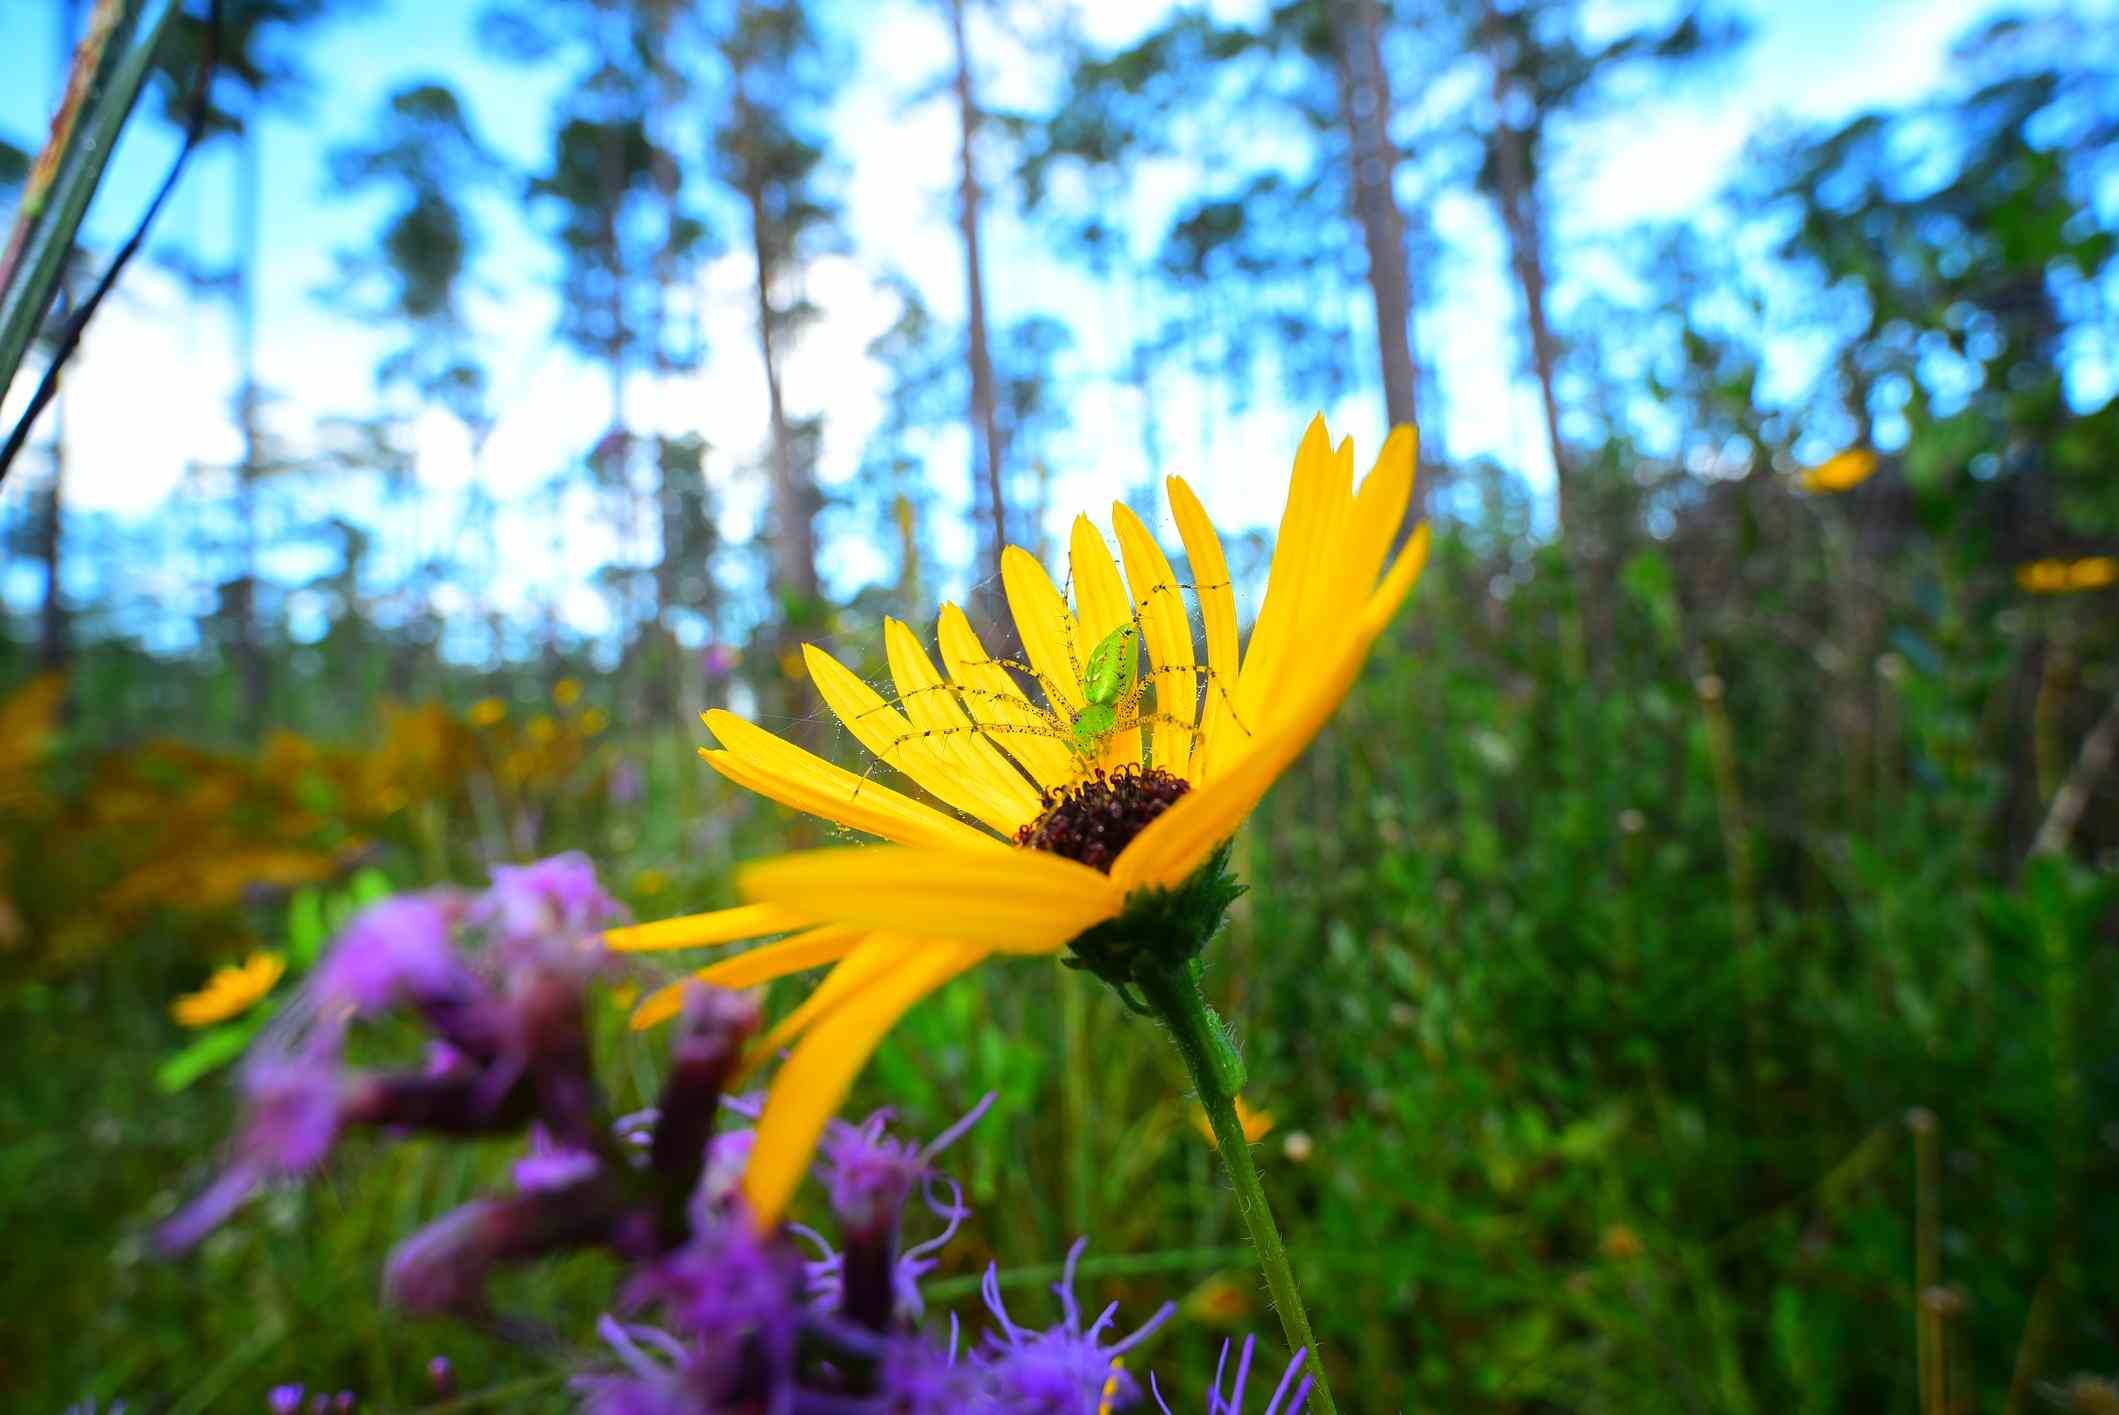 A green lynx spider climbs on a yellow flower in Florida